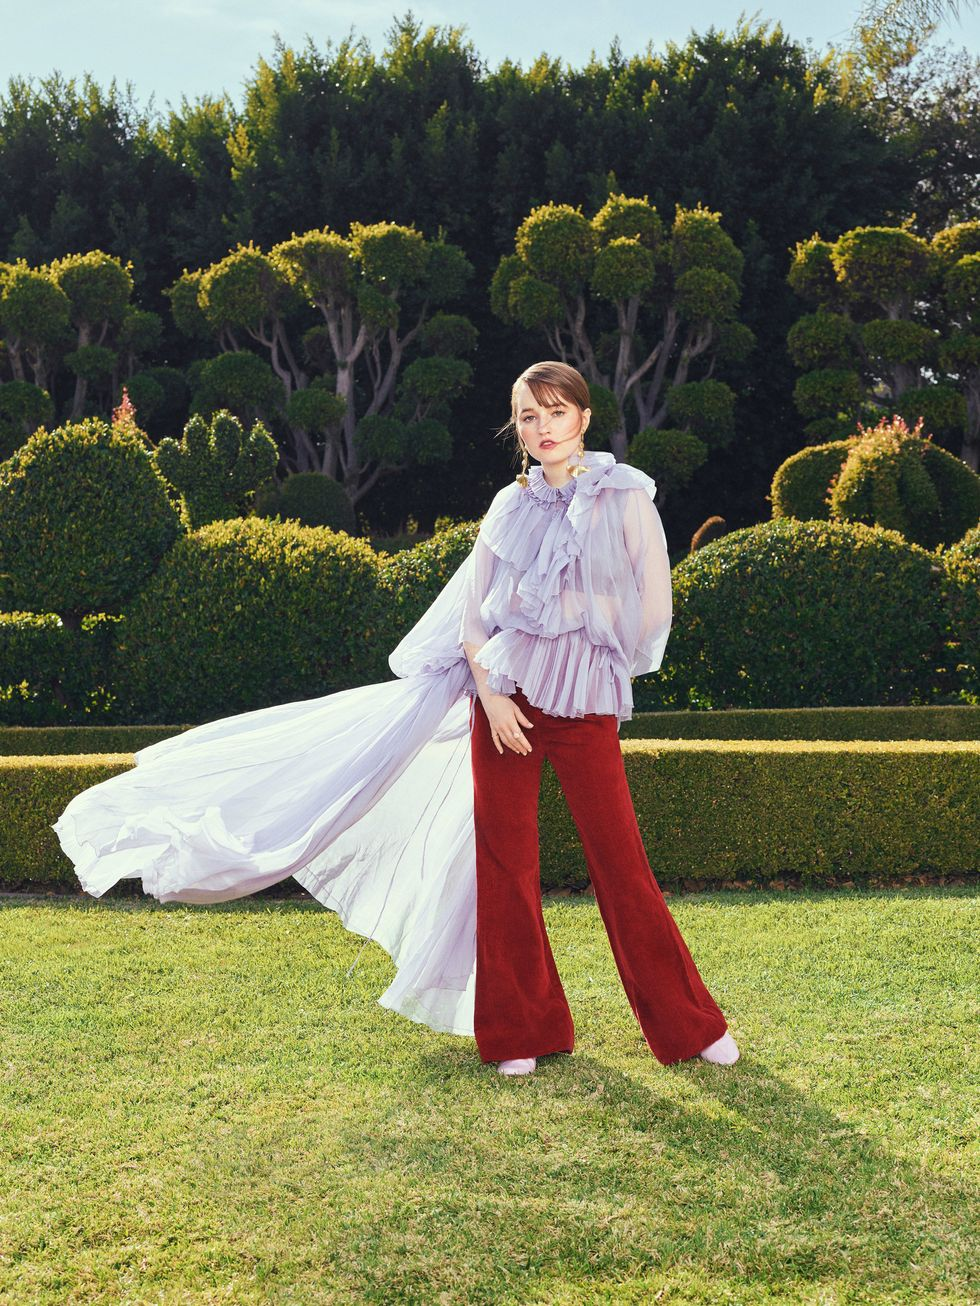 Actress Kaitlyn Dever Stands in a topiary garden wearing burgundy pants and long flowing lilac colored top.